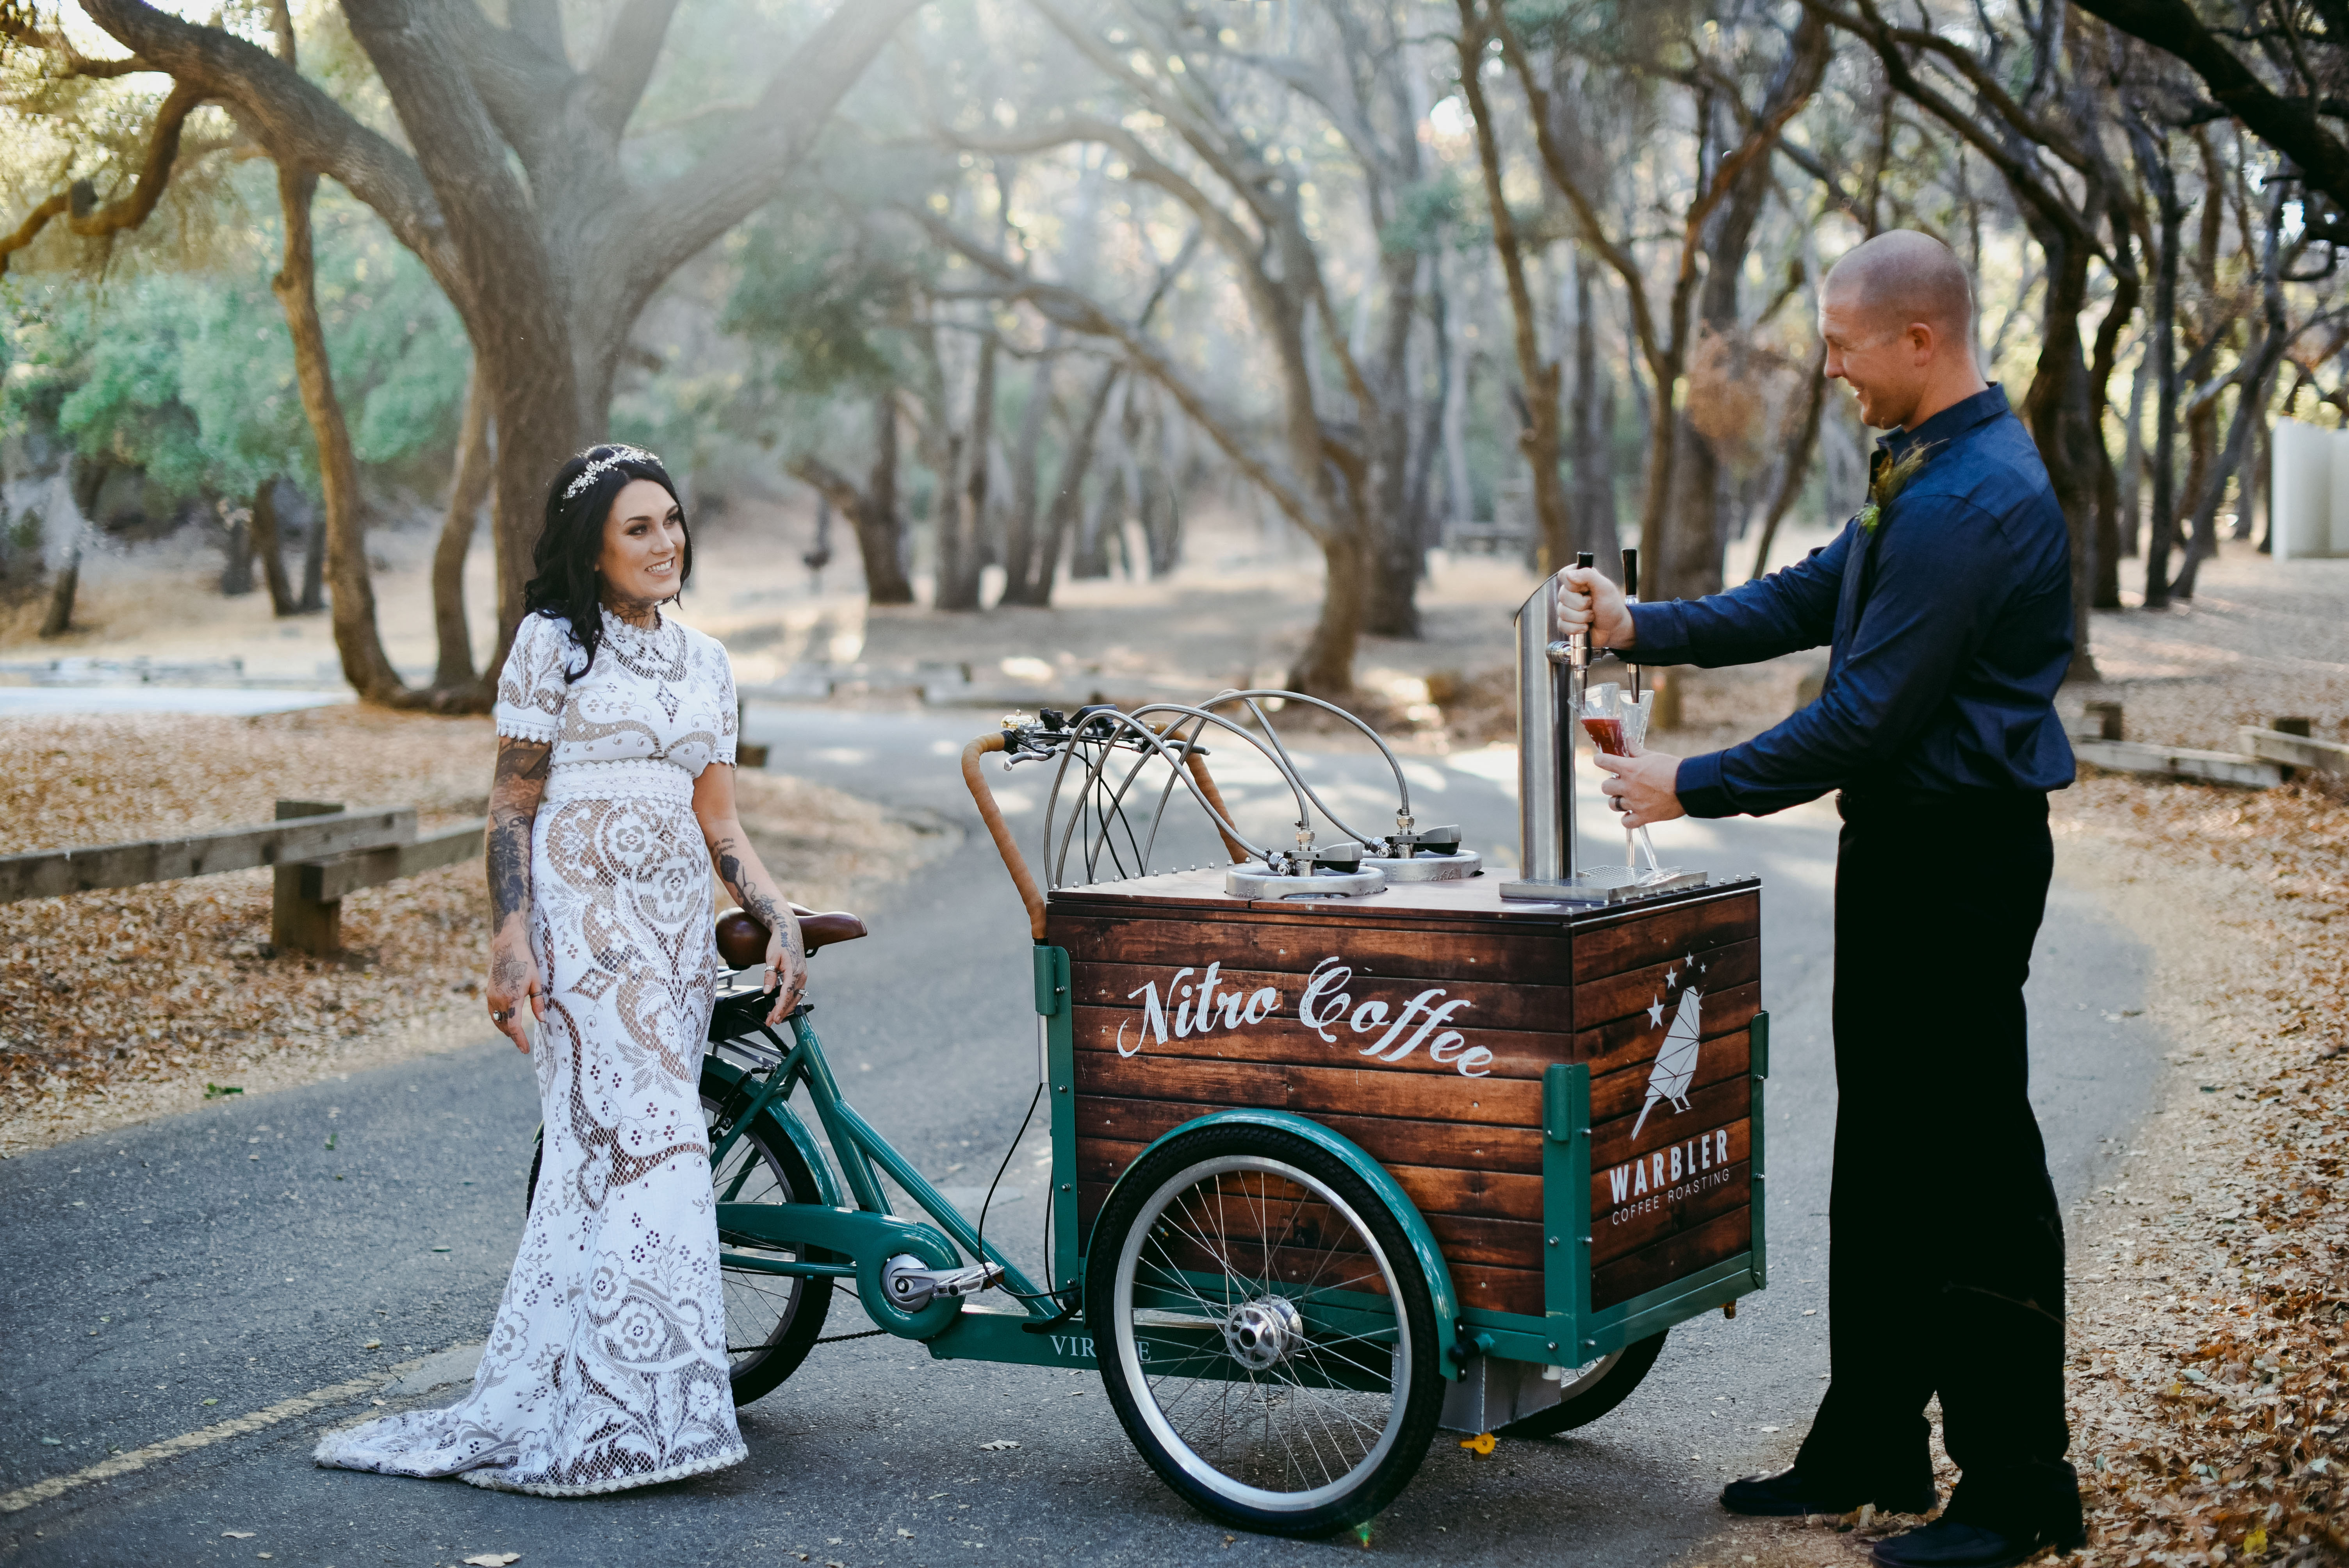 Bride and Groom pose with the Nitro Trike